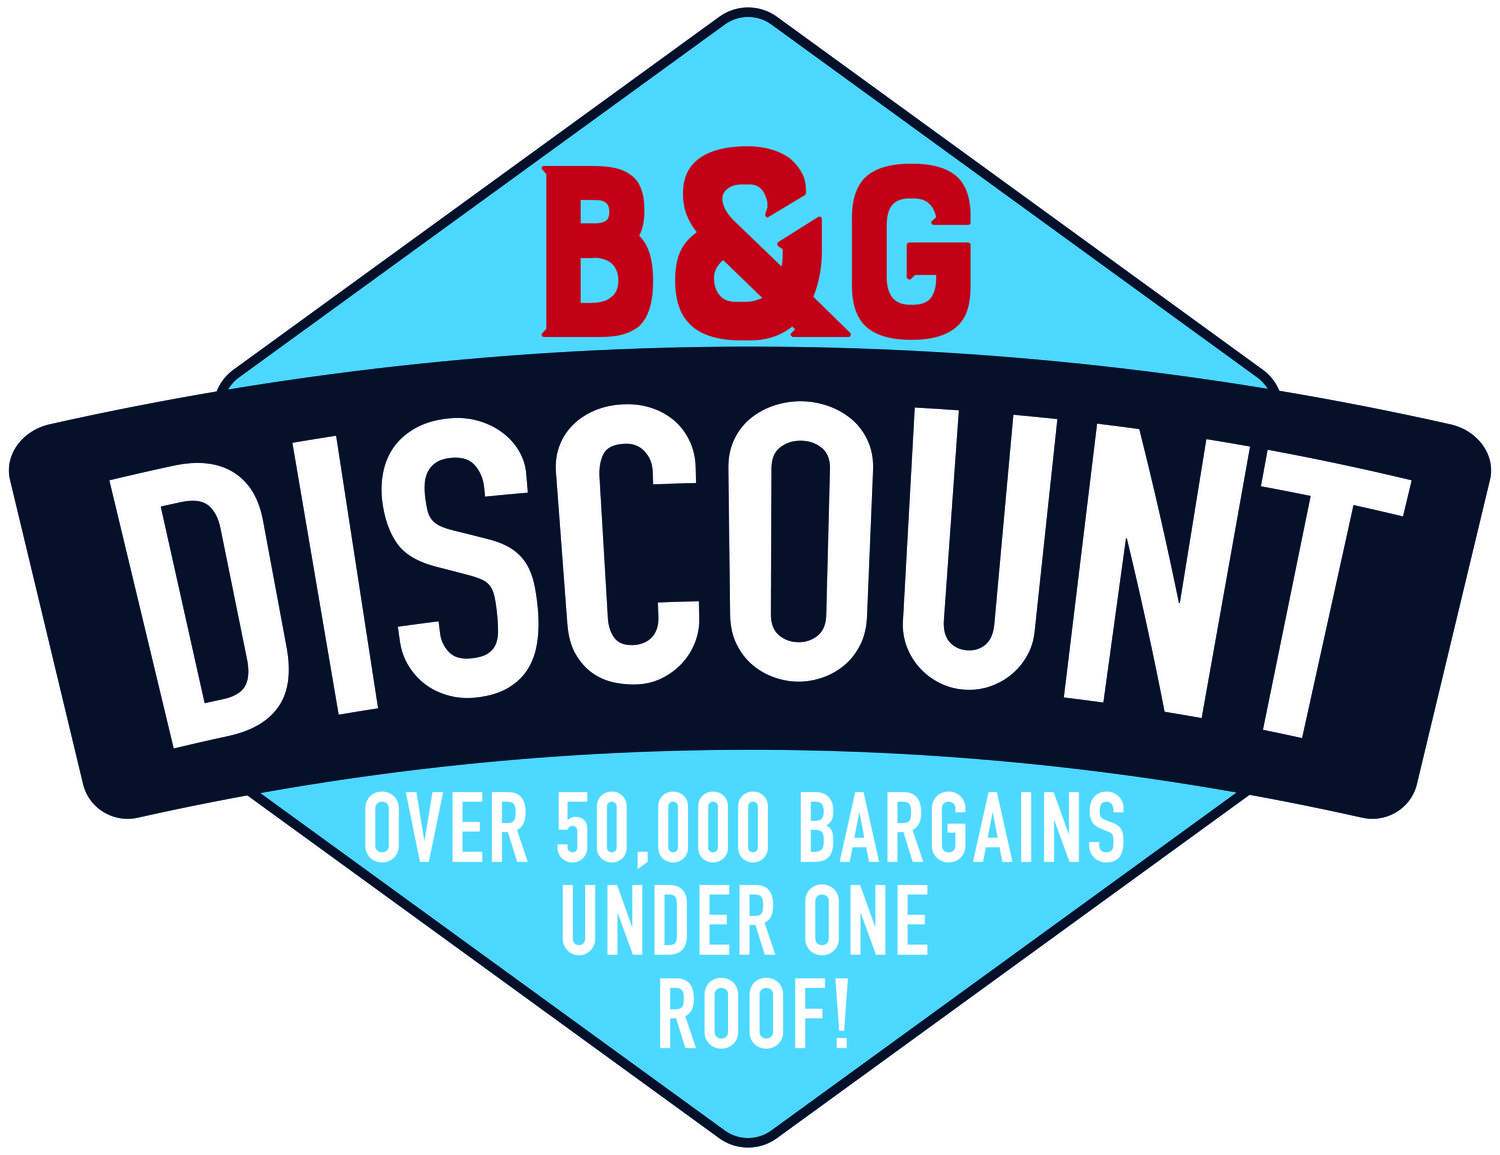 B&G DISCOUNT STORE